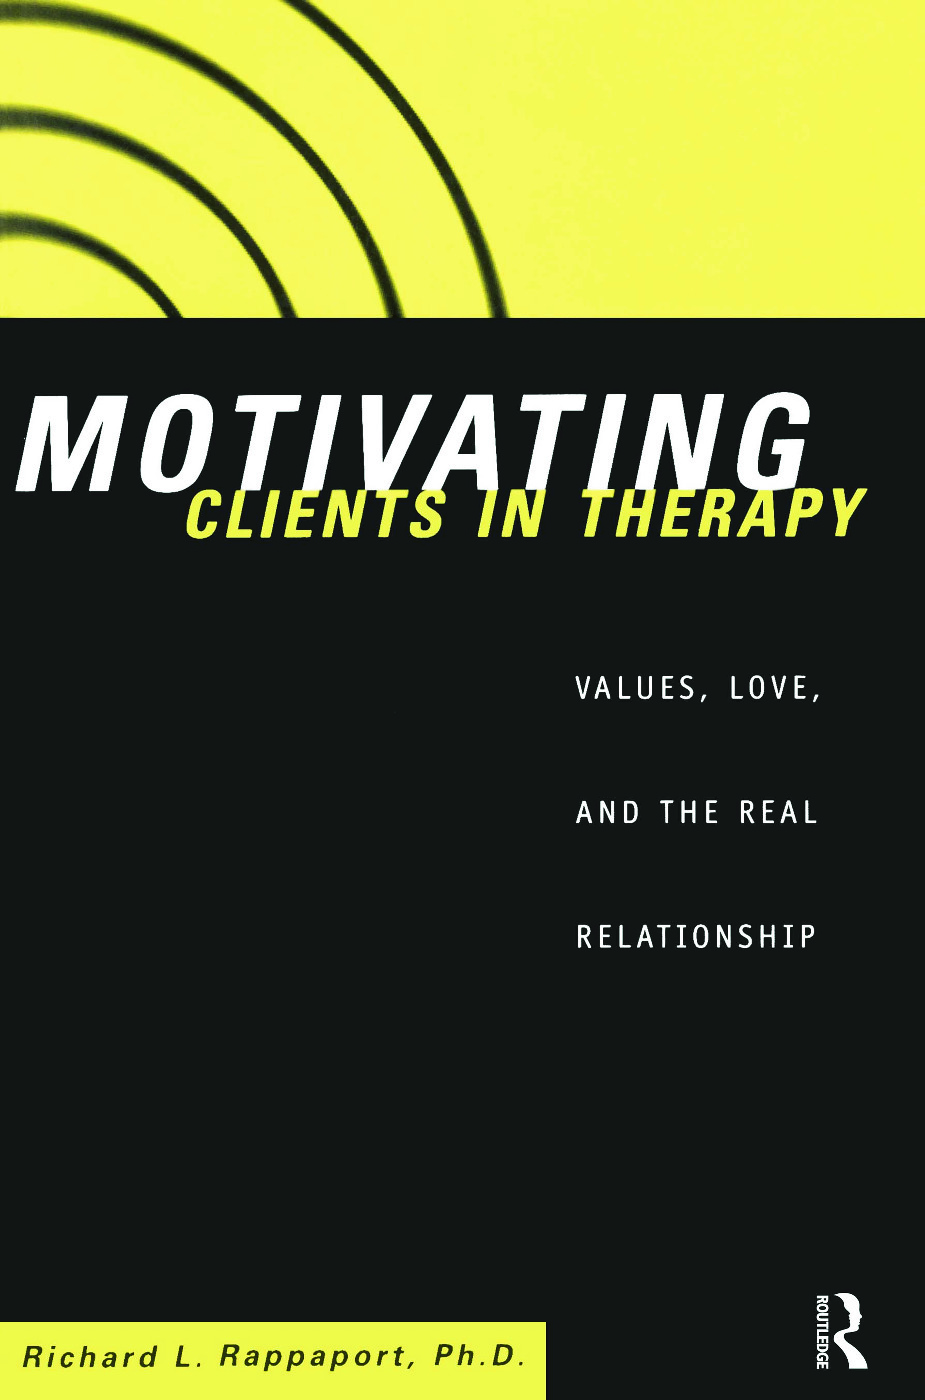 Motivating Clients in Therapy